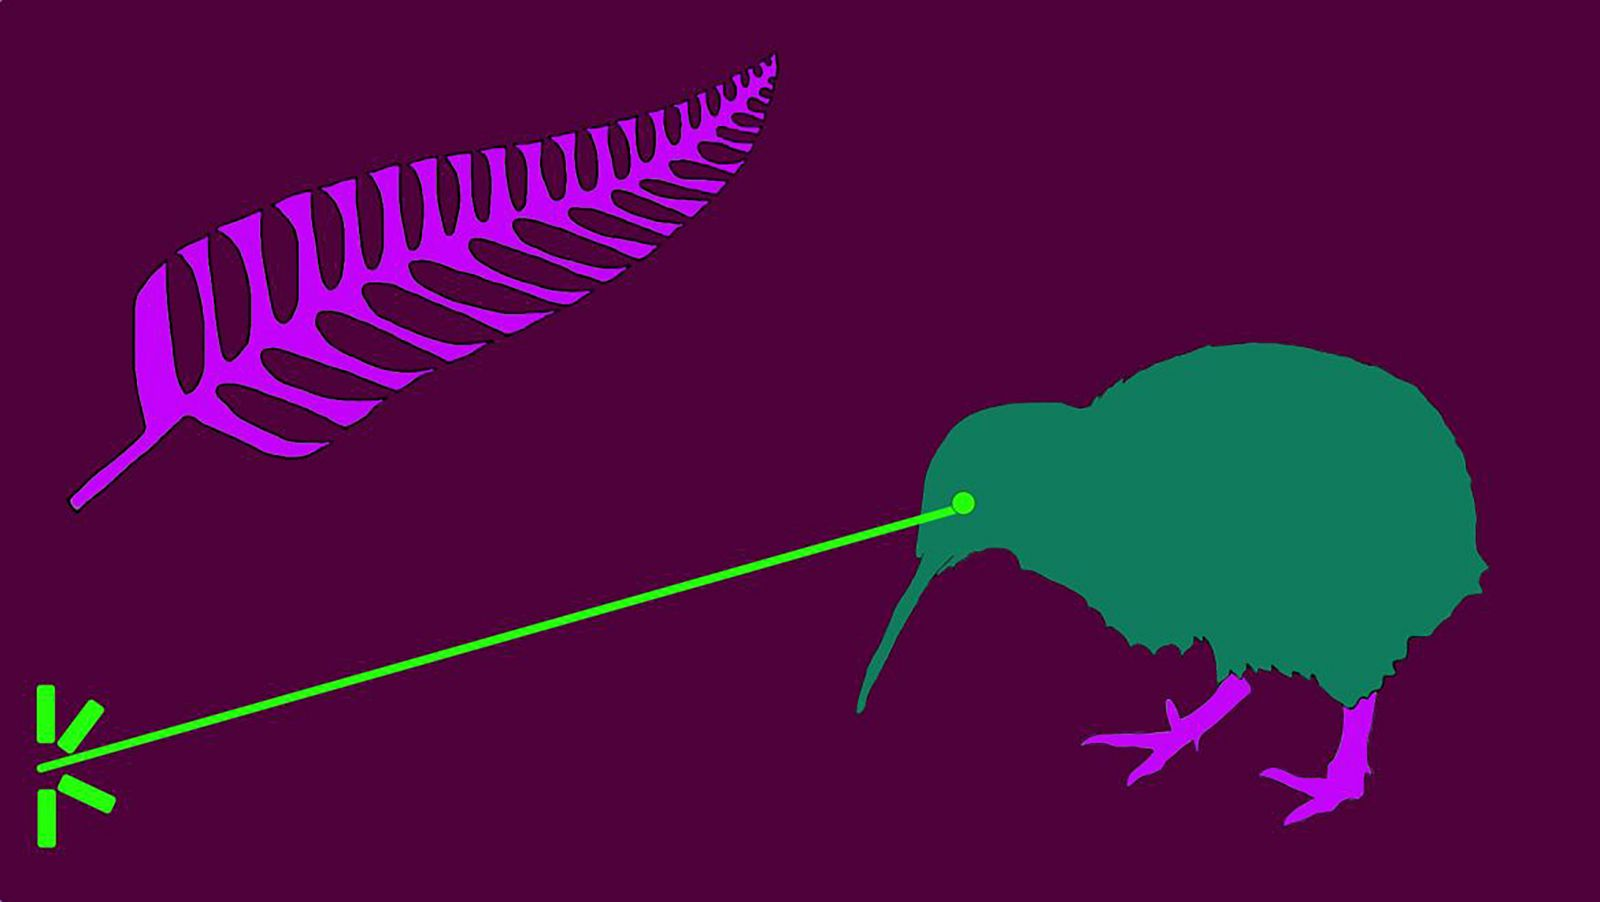 illustrated fern and kiwi bird